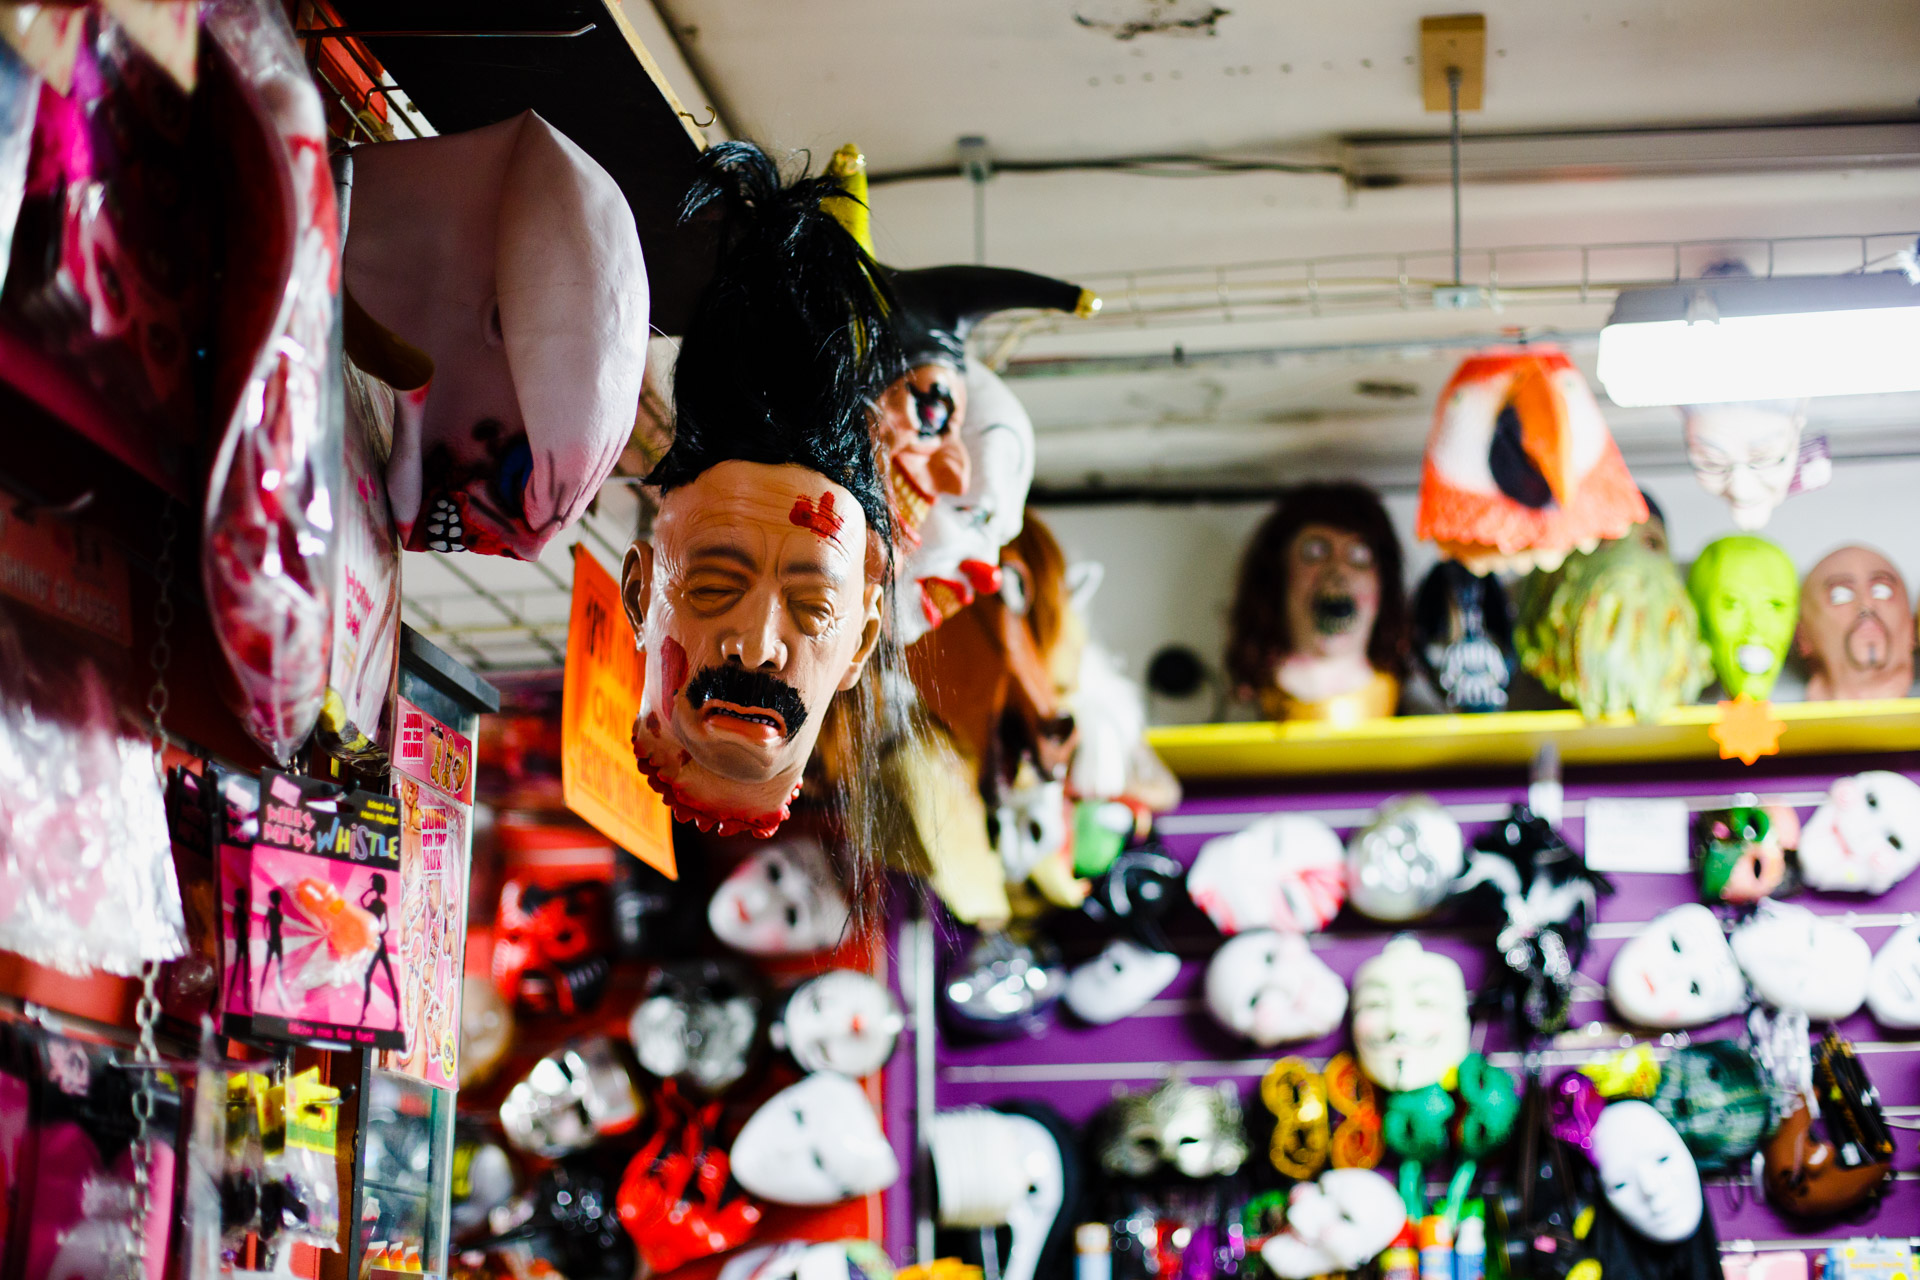 A mask hanging out in a mask shop.